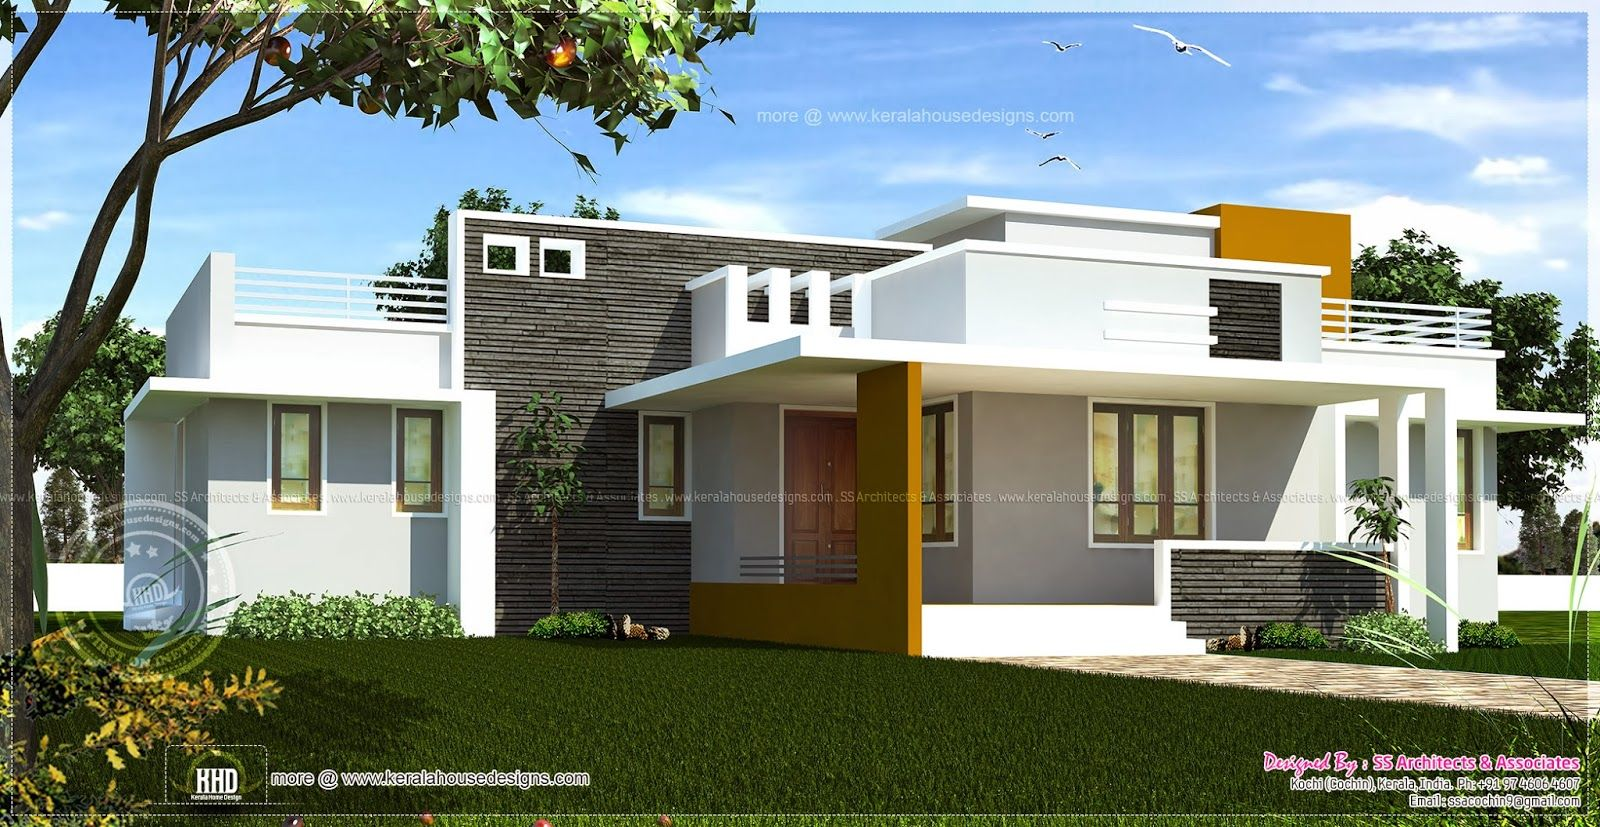 Excellent single home designs single floor contemporary for Contemporary model house